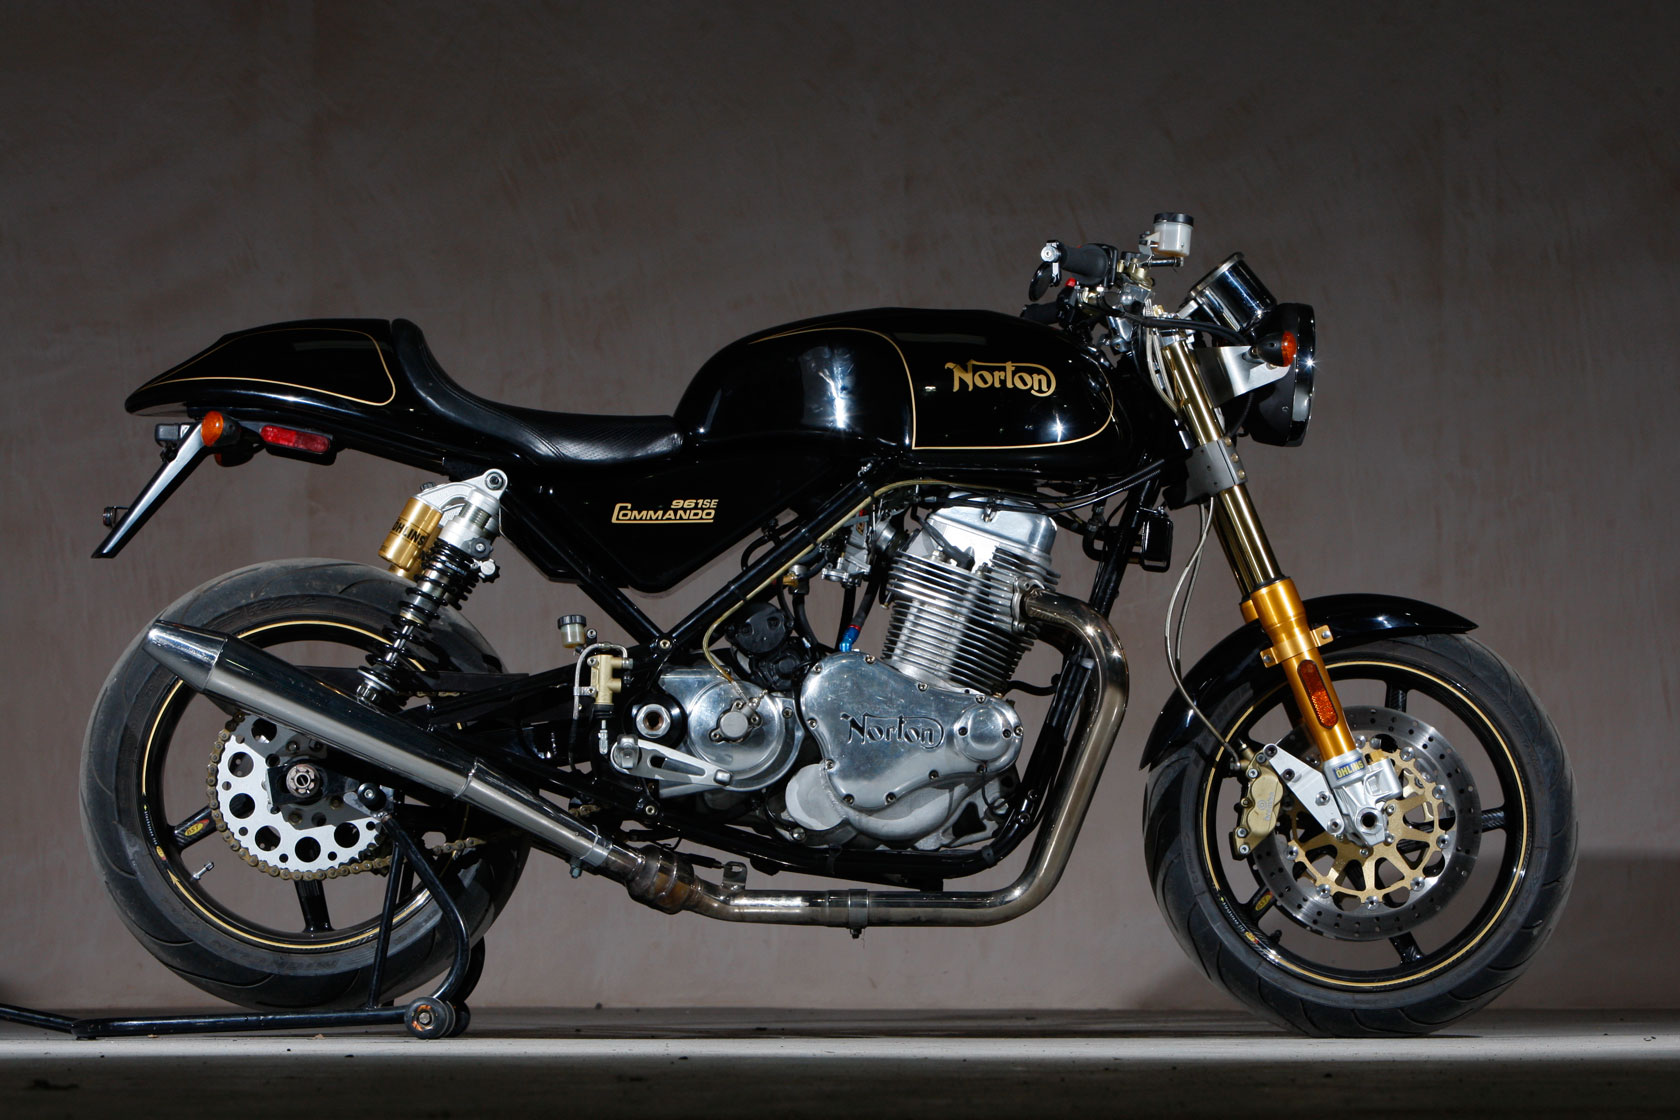 Norton Commando 961 SF 2013 images #117683